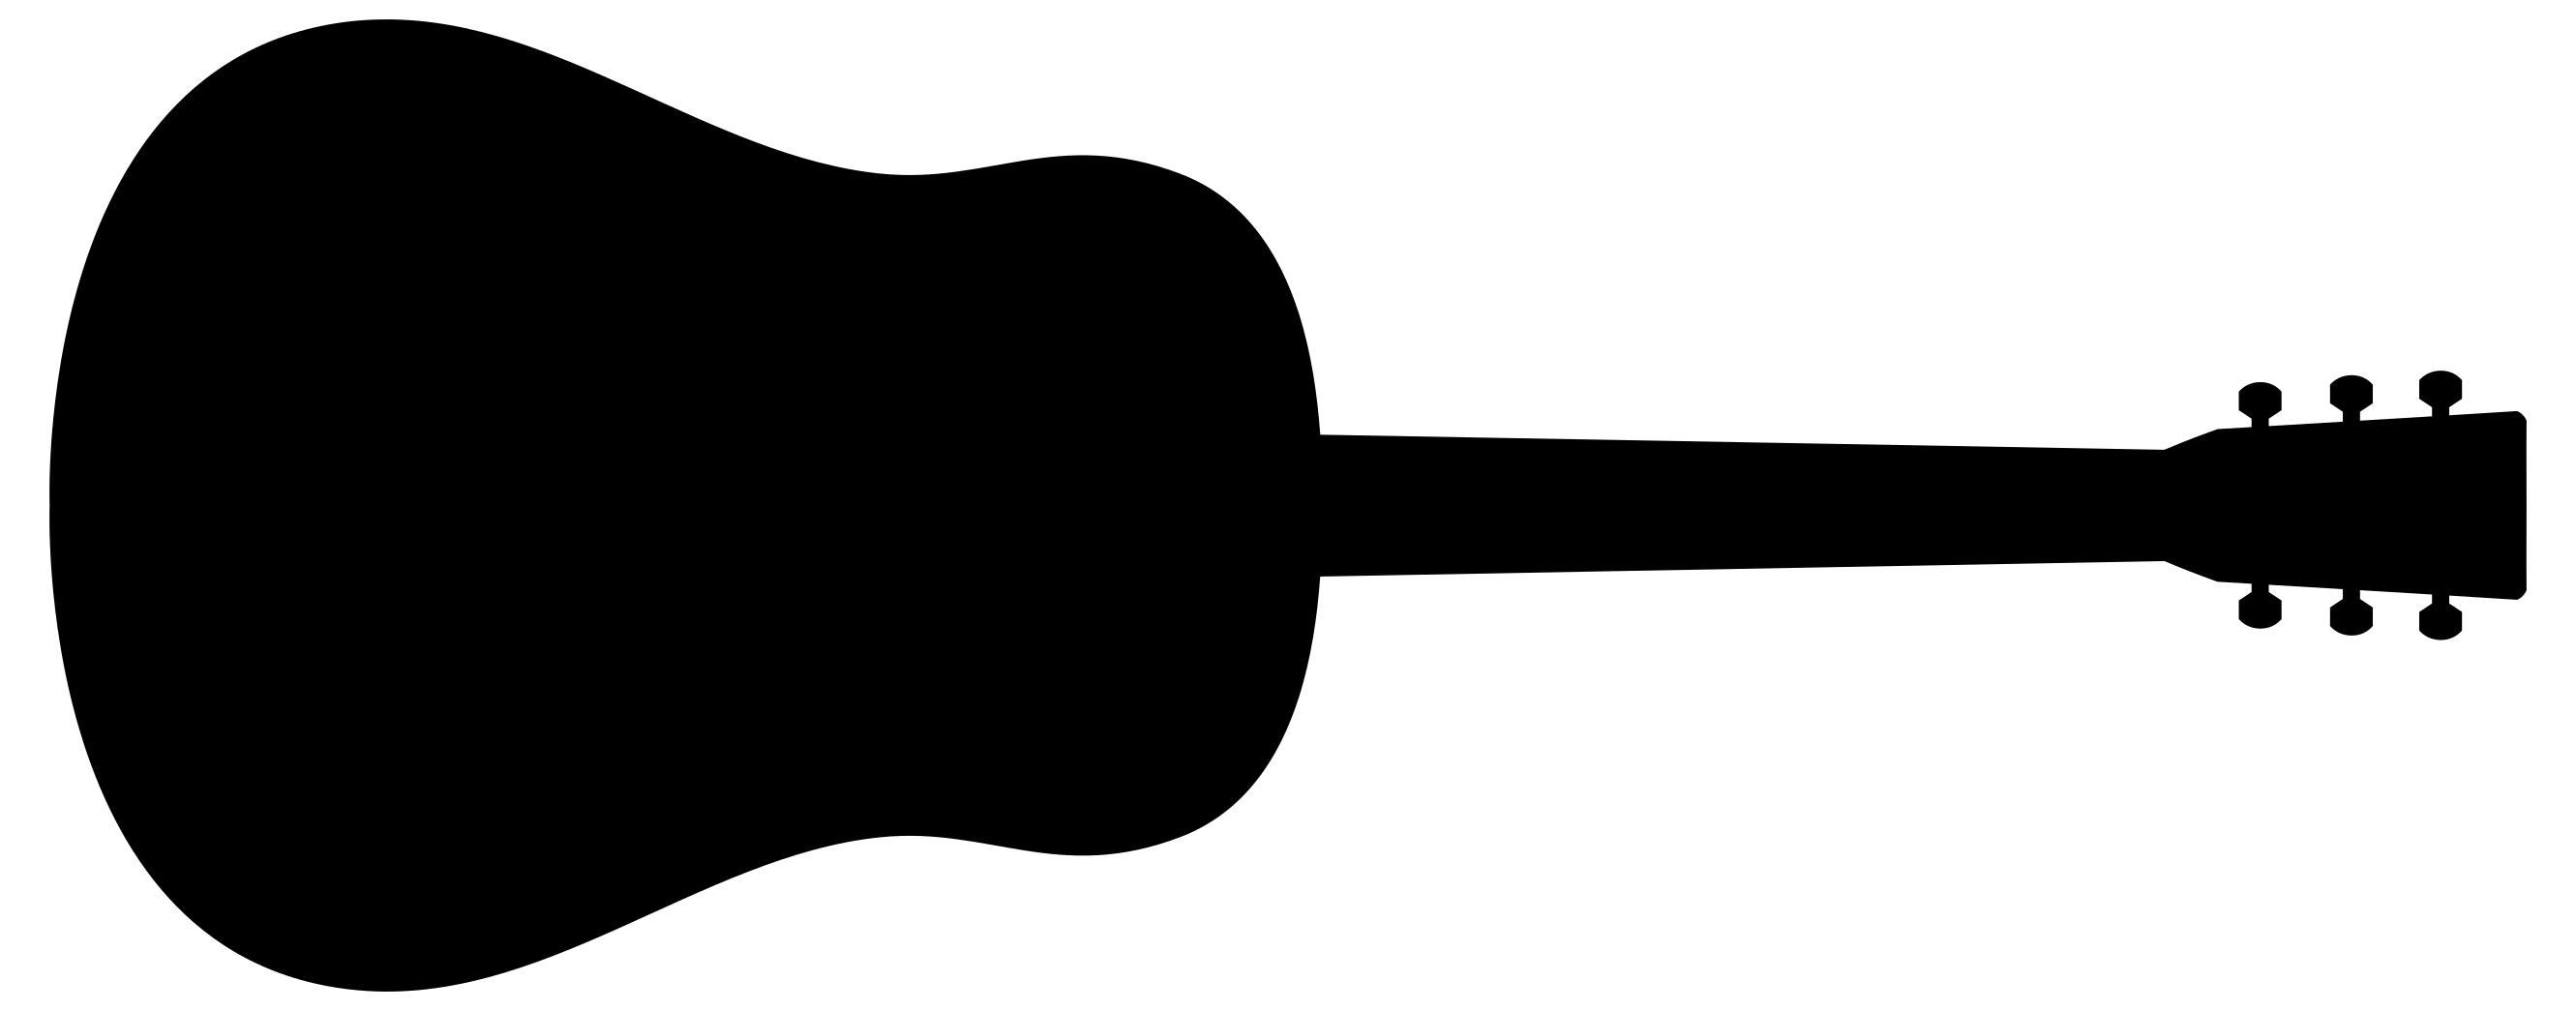 Guitar Silhouette at GetDrawings.com.